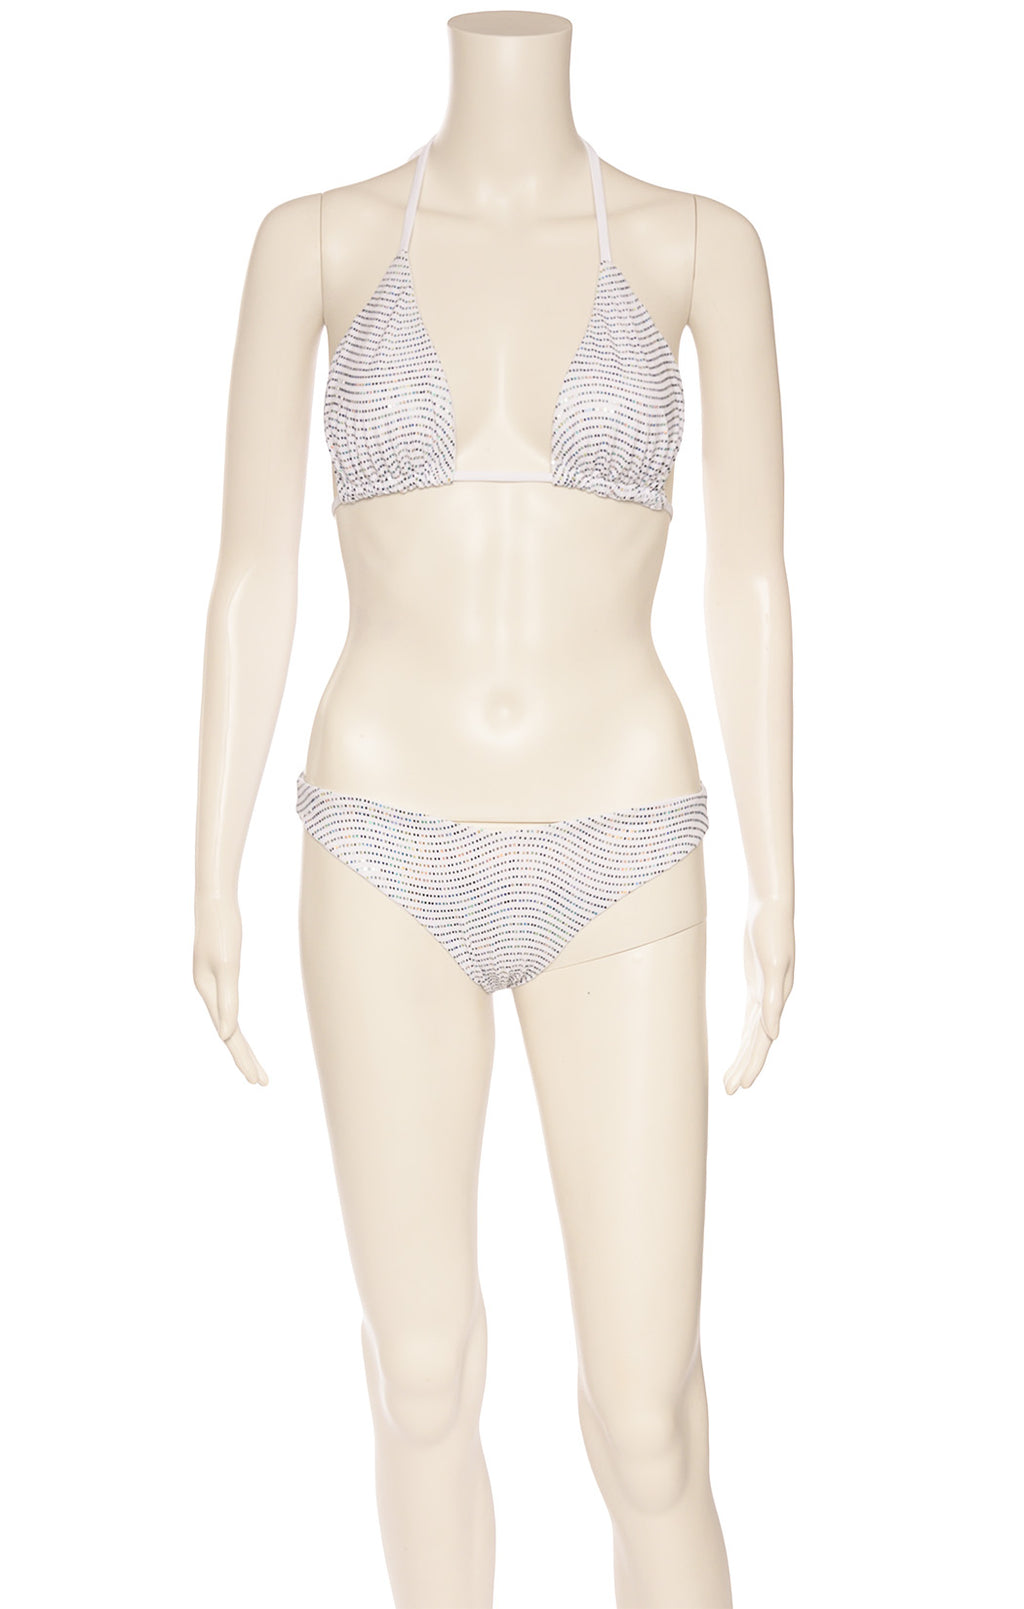 Front view of PALMAGENTE Bikini Size: Small